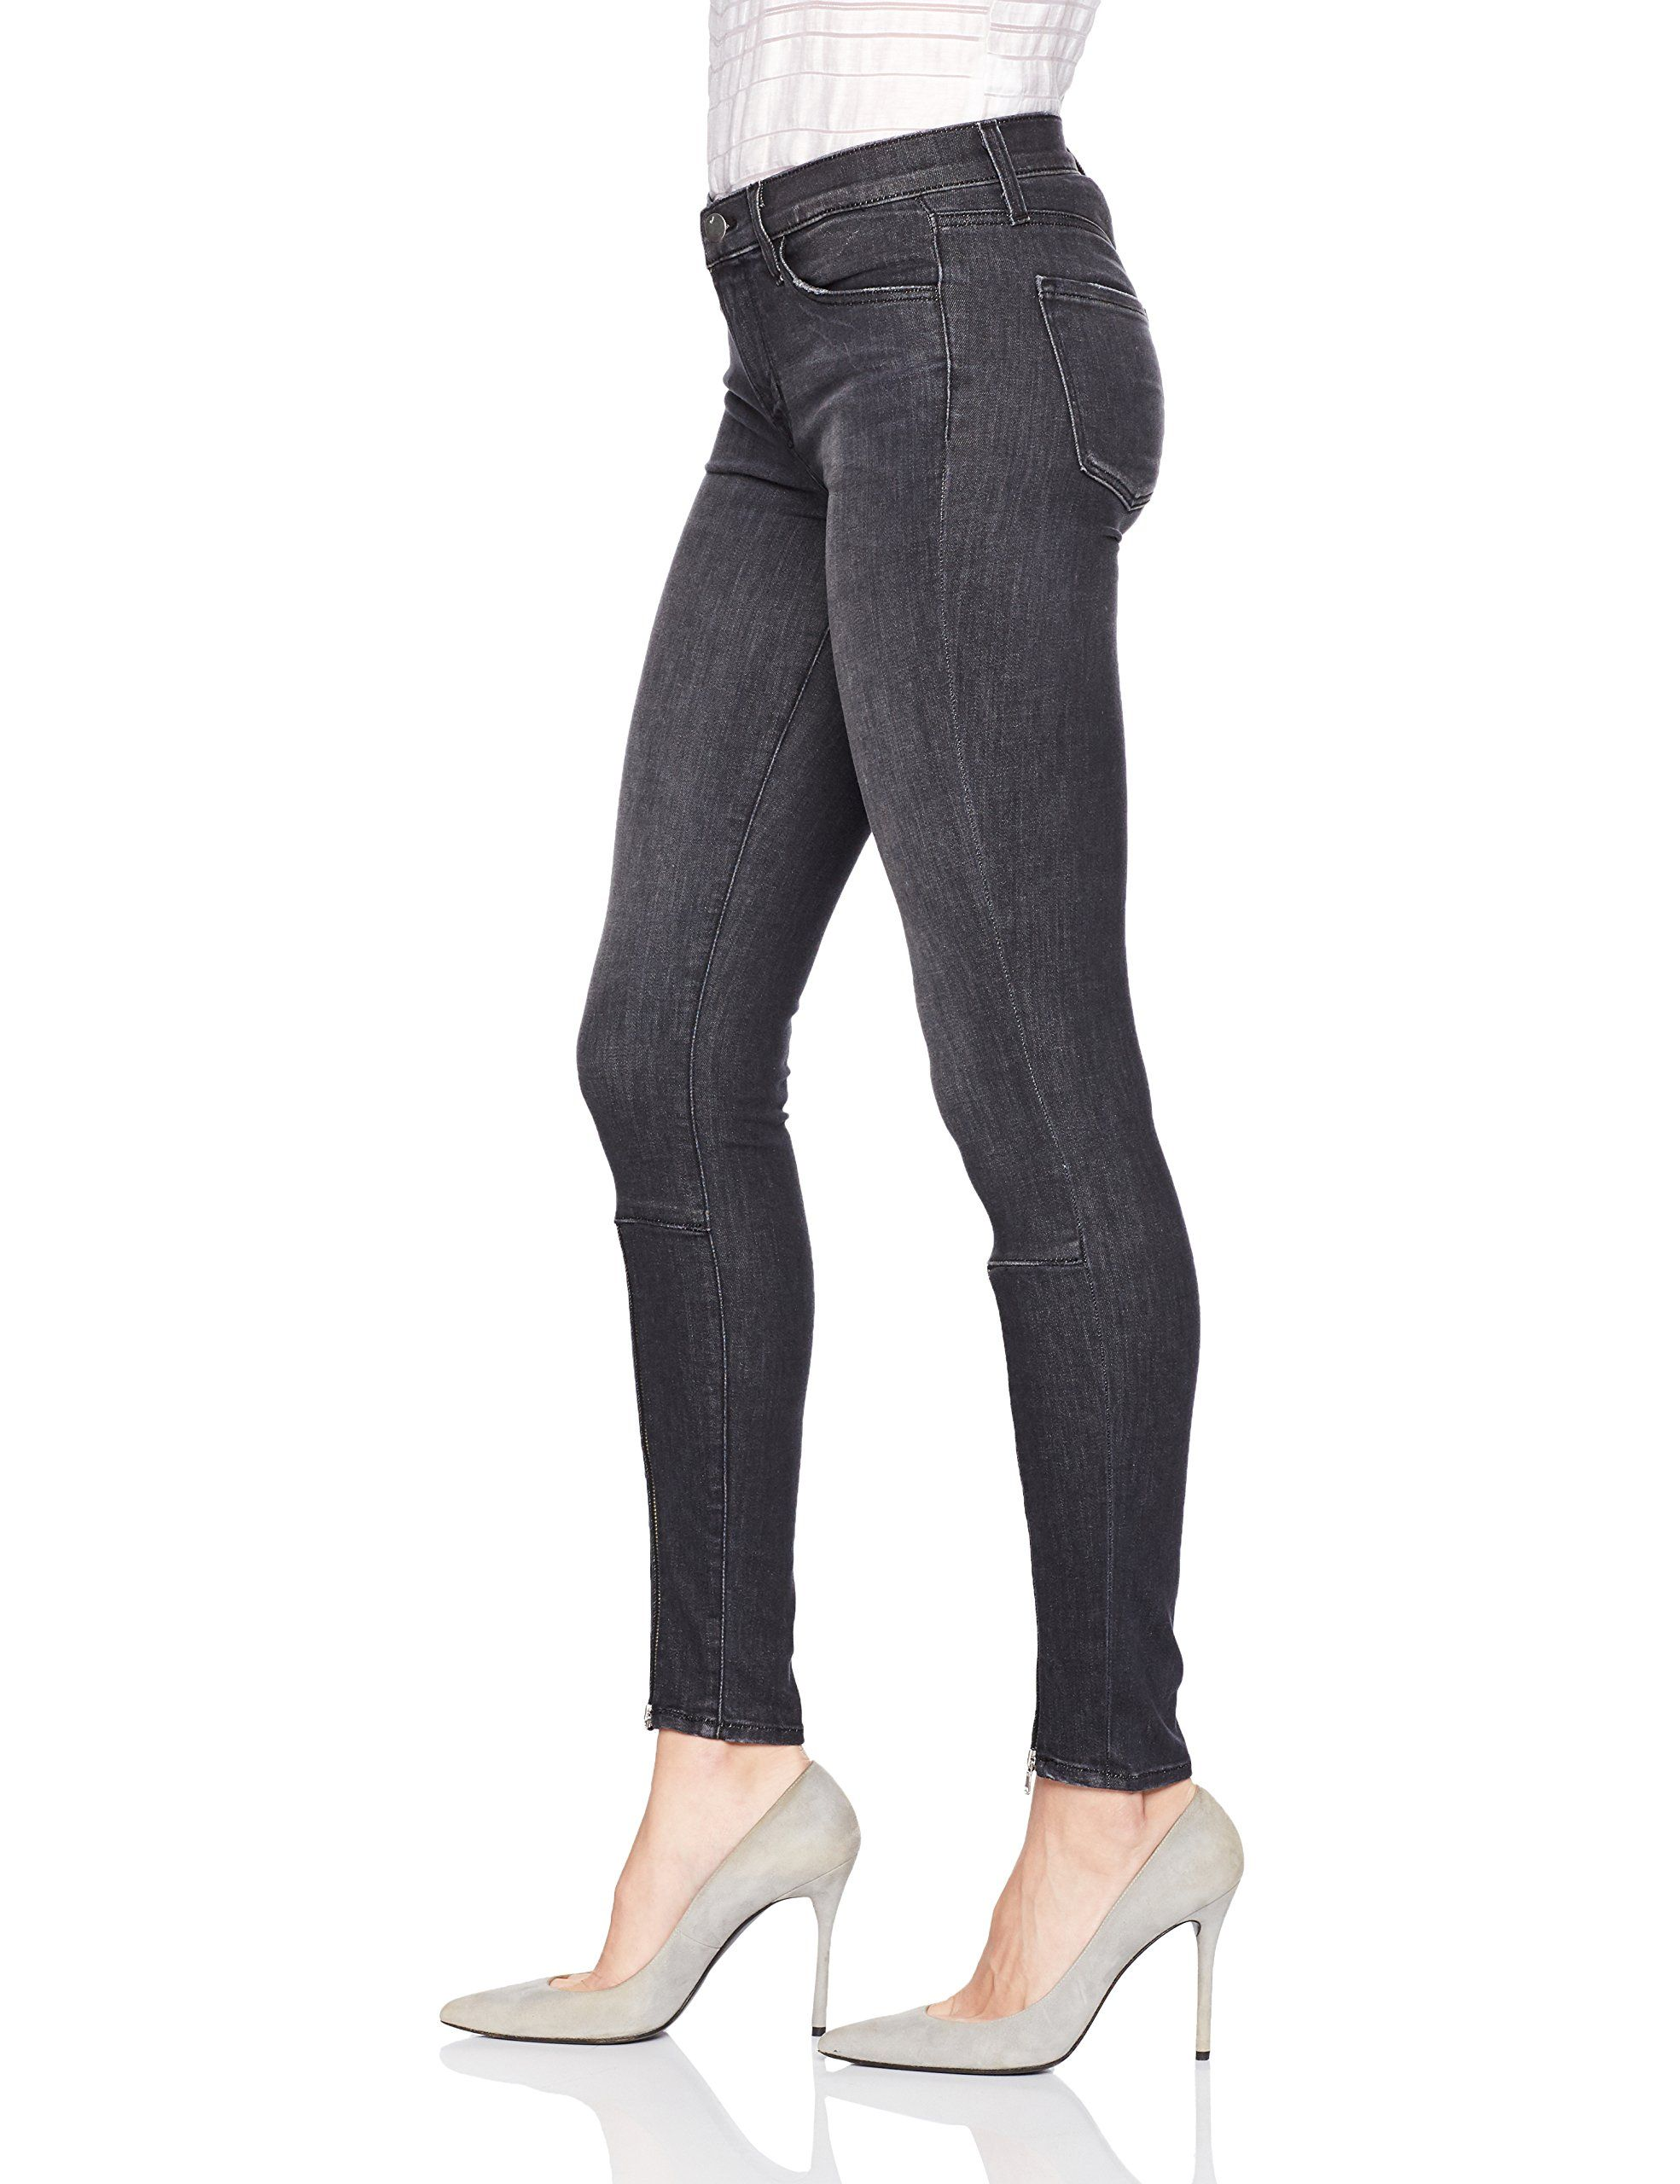 ef962ba1cd4d J Brand Jeans Womens 620 Mid Rise Super Skinny with Zip Jeans Black Heath  28 ** To view further for this item, visit the image link.